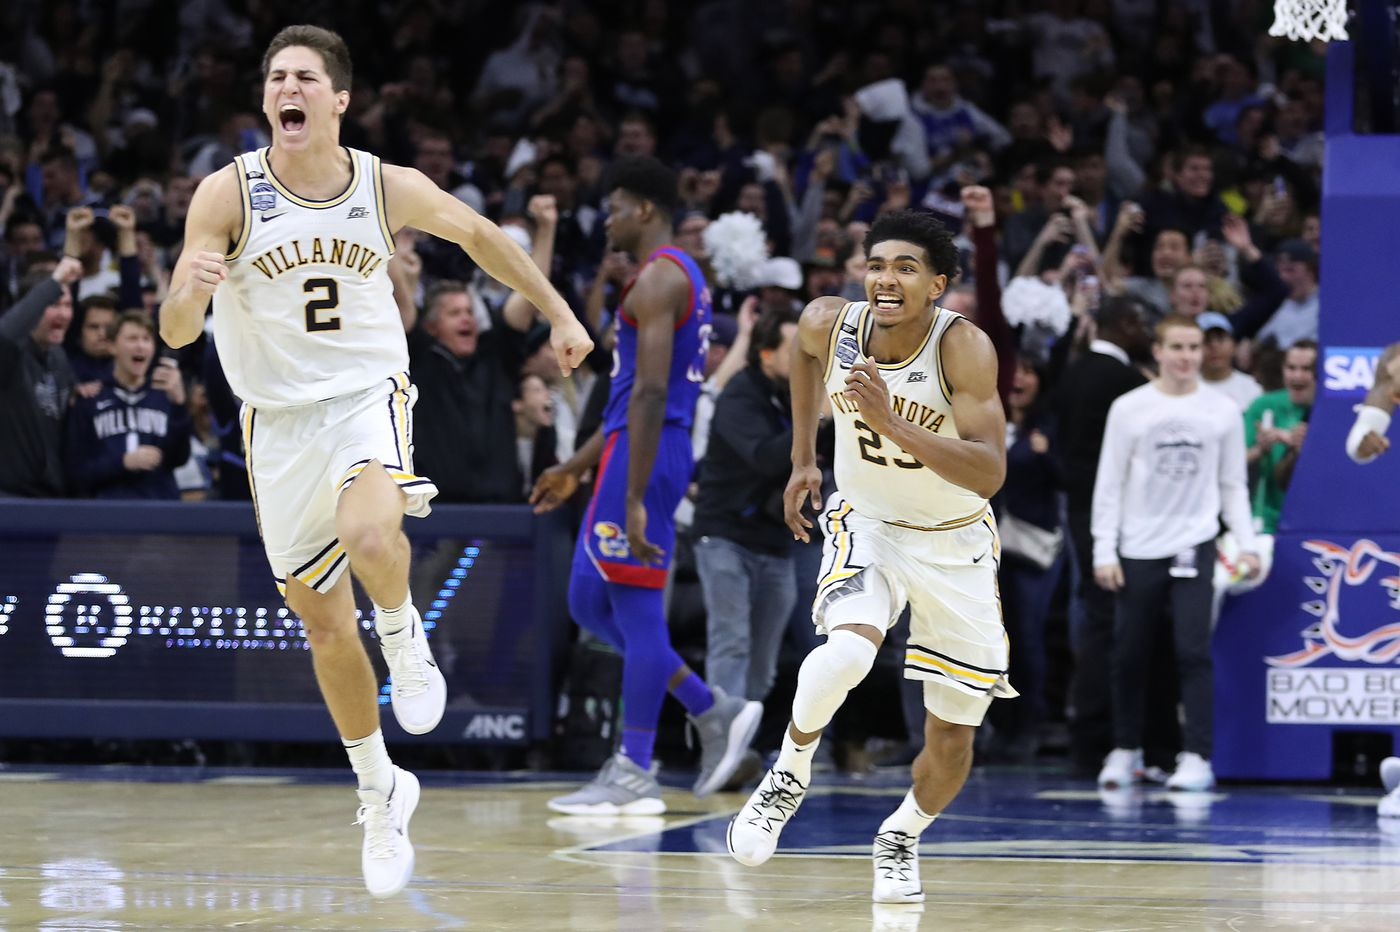 No. 18 Villanova 56, No. 1 Kansas 55: Stats, highlights, and reaction from the Wildcats' stunning upset